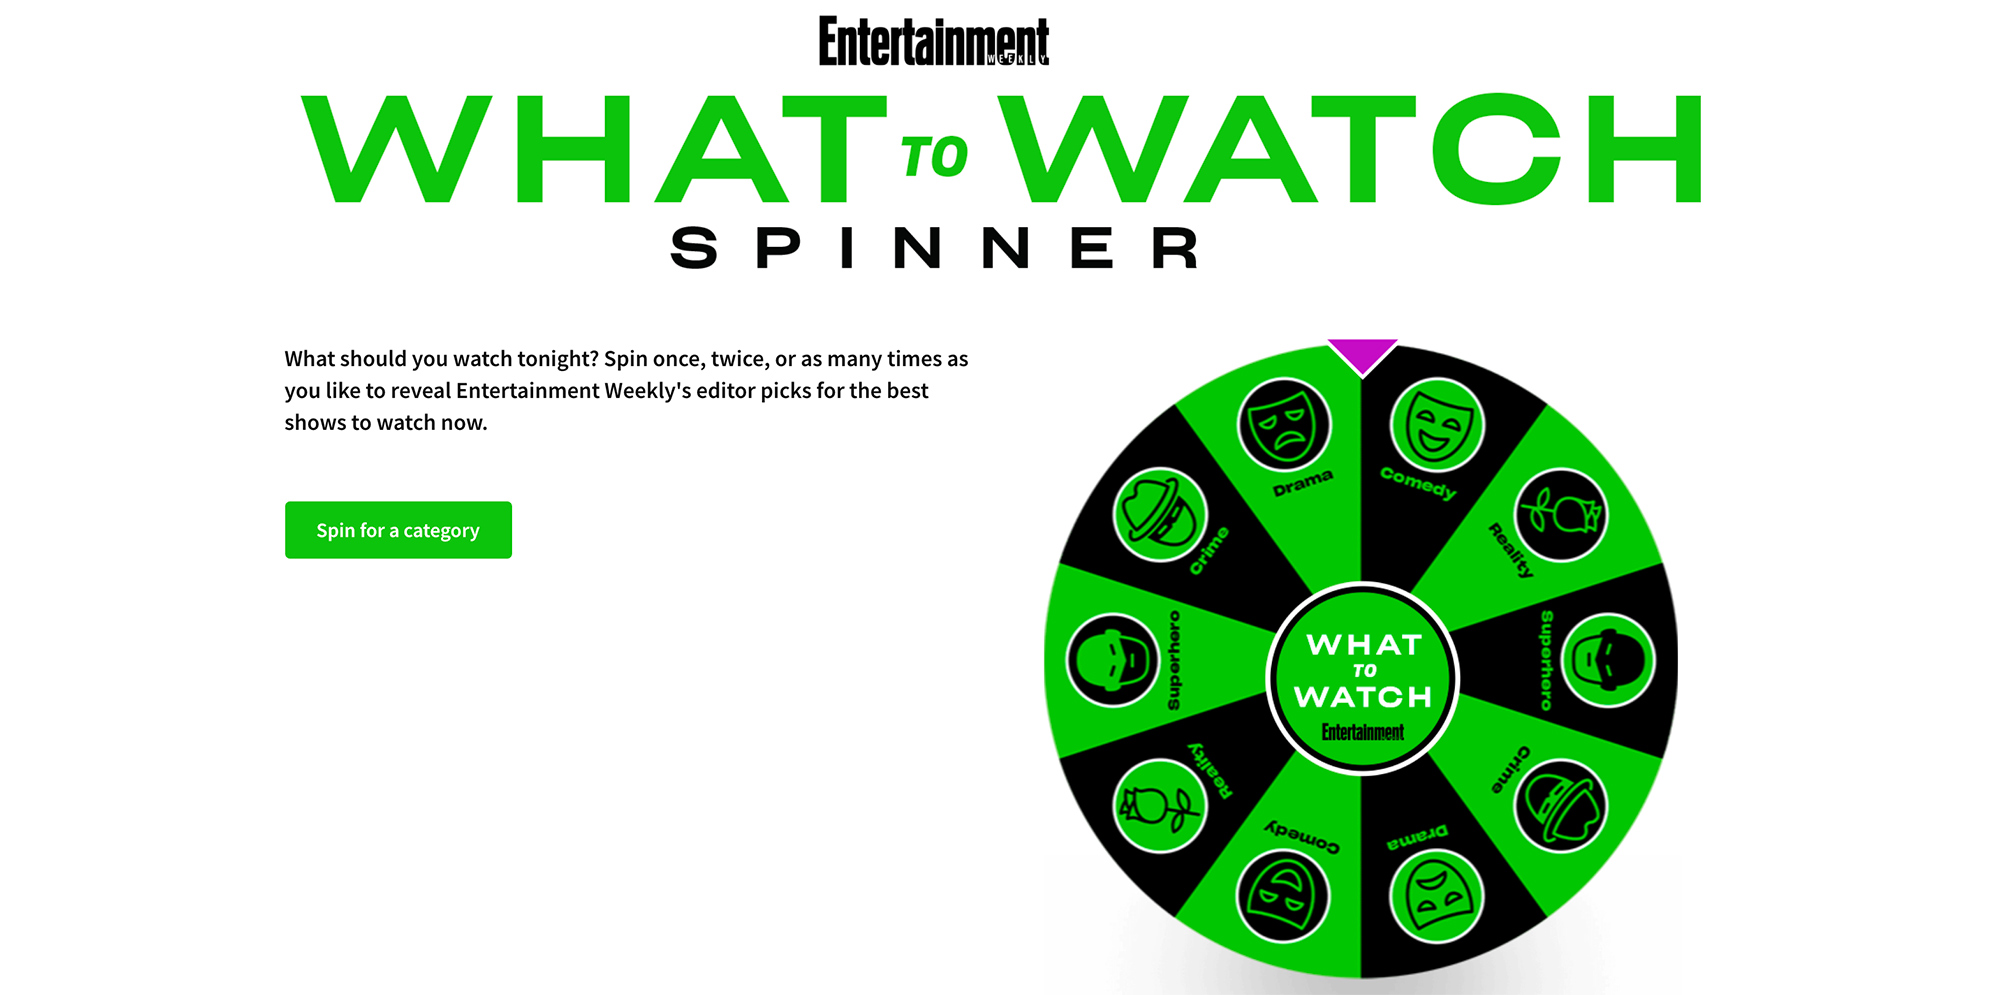 What to Watch spinner